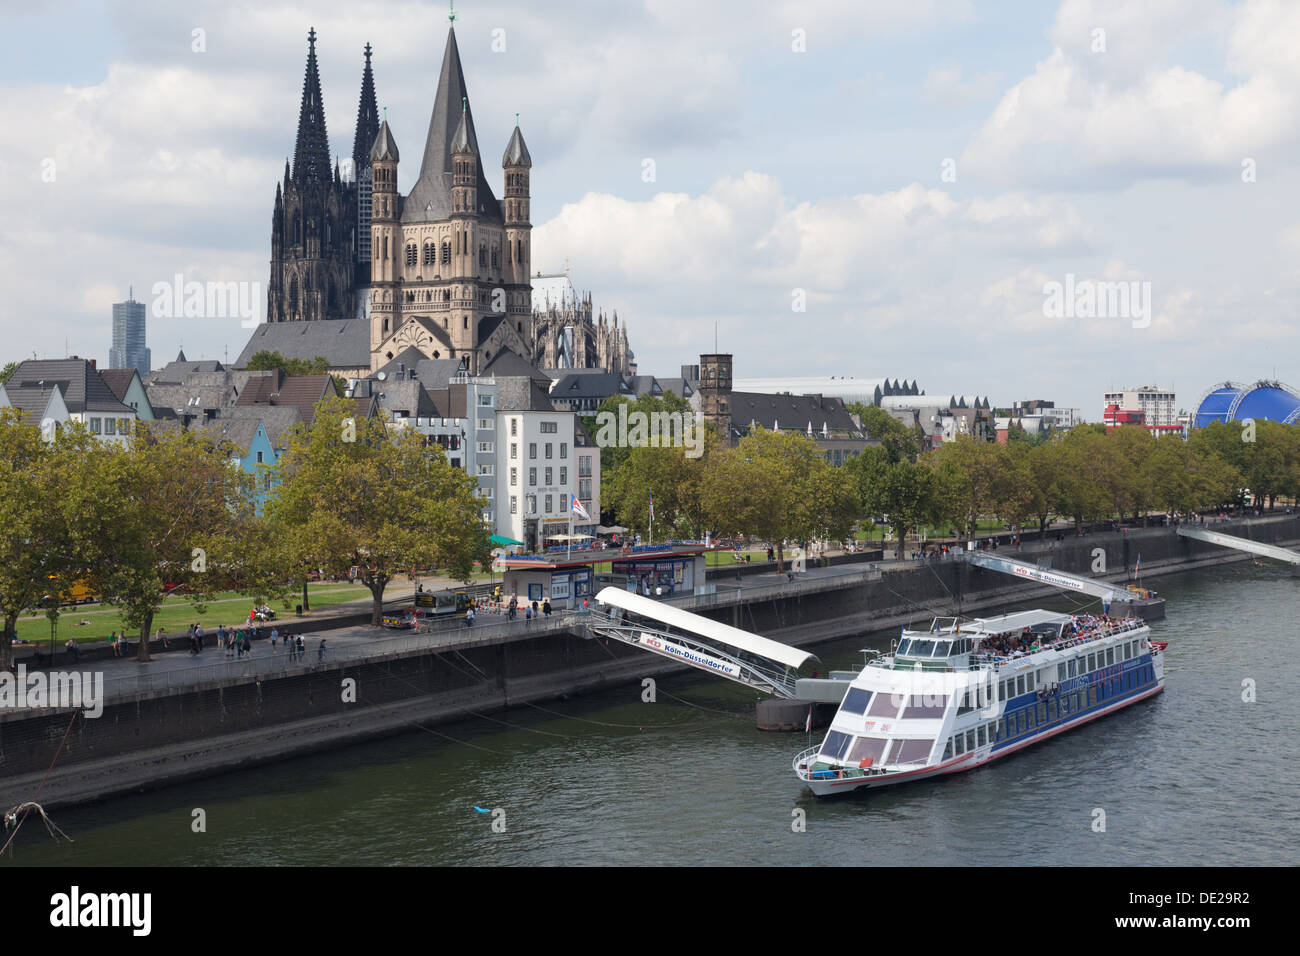 riverside bekannt als am leystapel in k ln k ln deutschland stockfoto bild 60287894 alamy. Black Bedroom Furniture Sets. Home Design Ideas